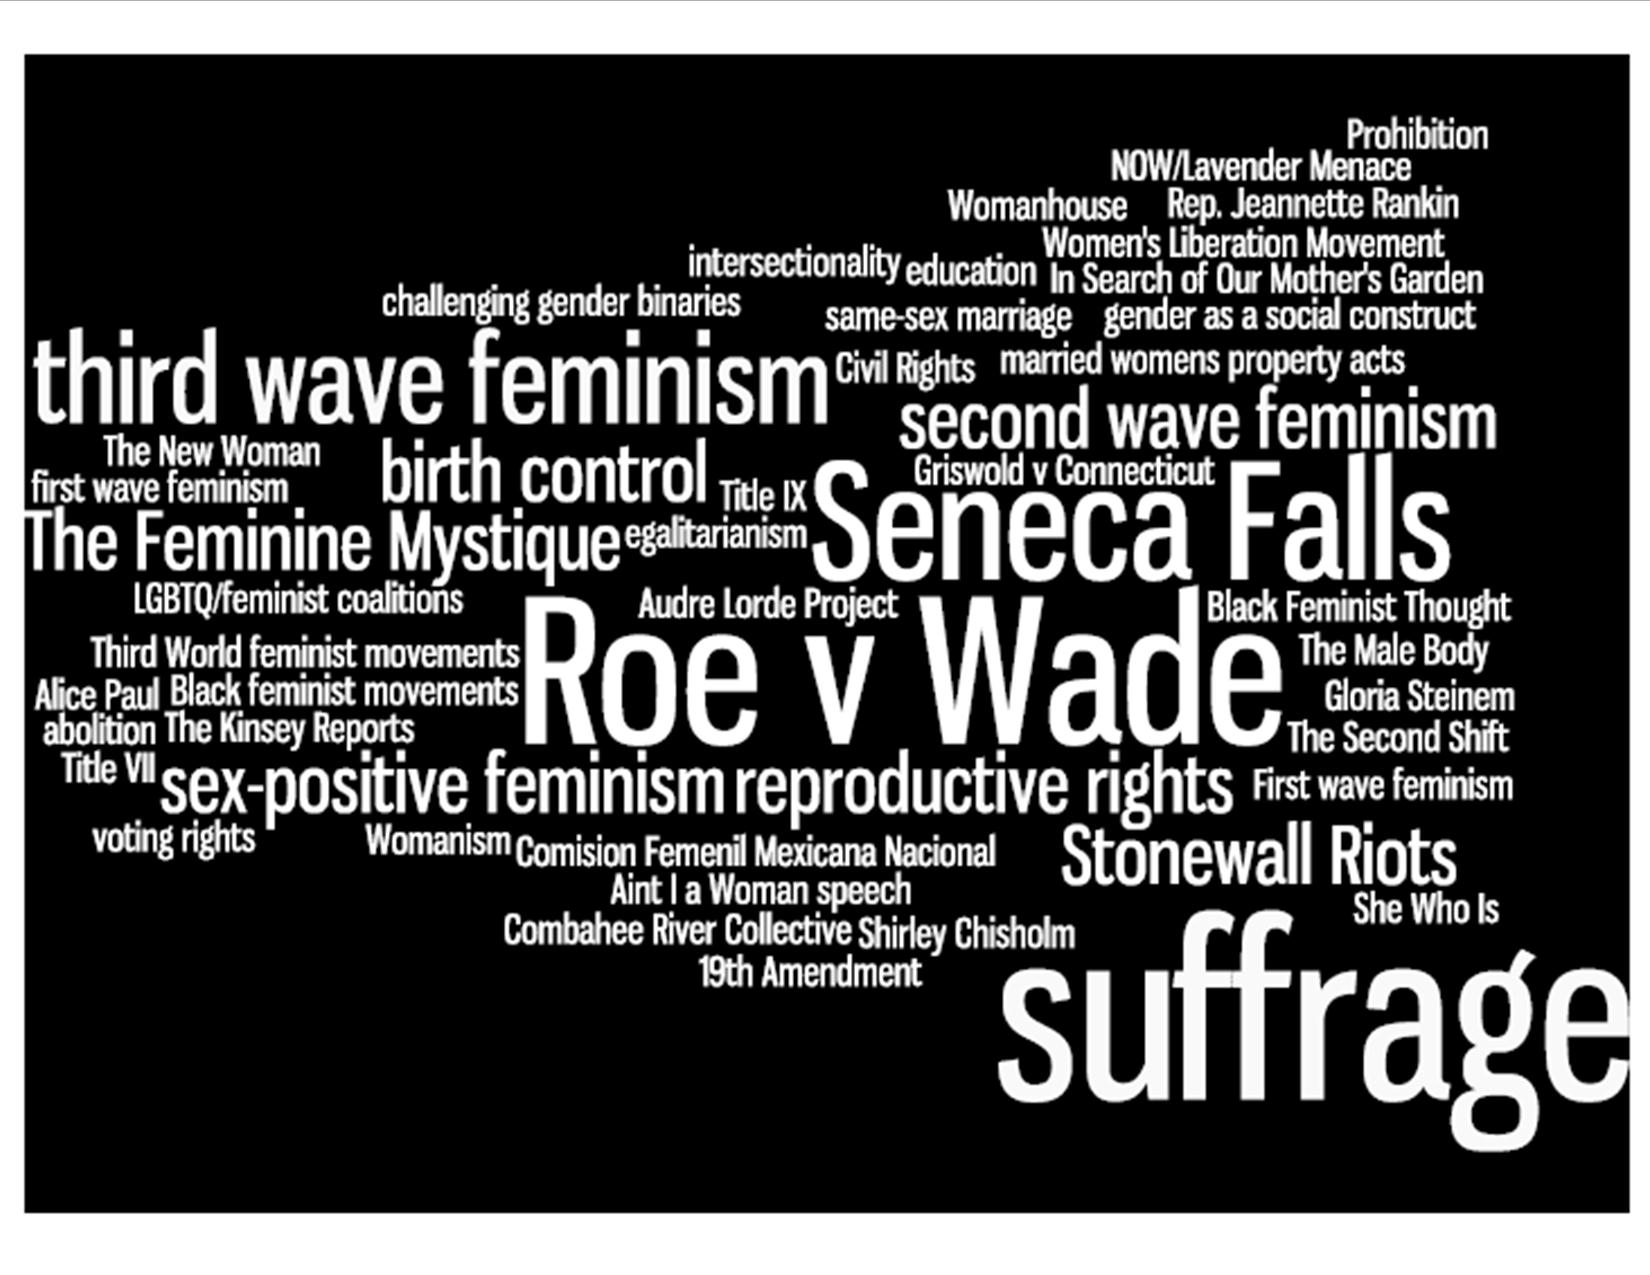 What's big in the history of feminism?